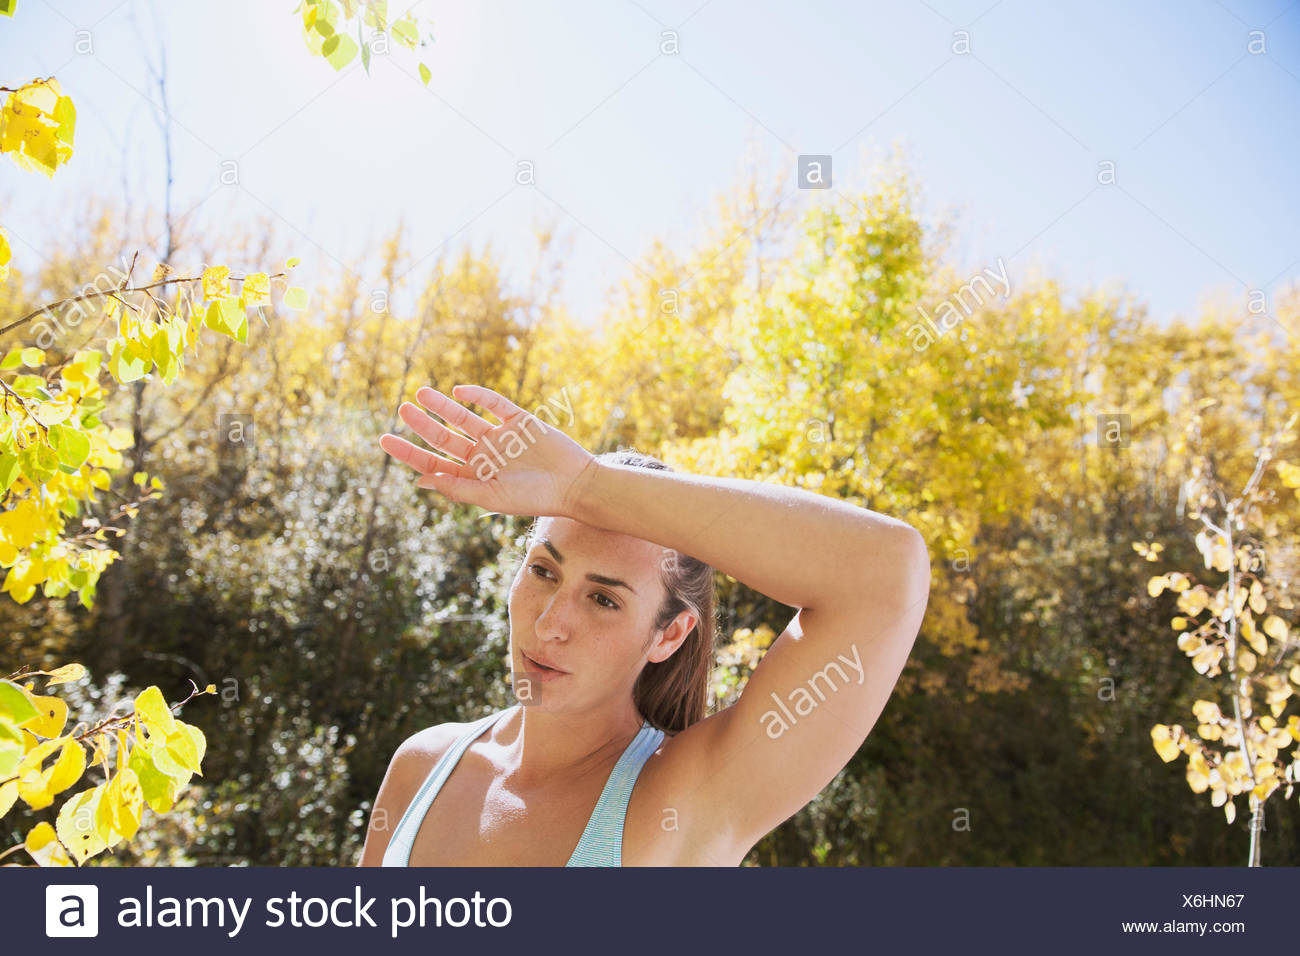 Woman wiping brow during outdoor workout. - Stock Image